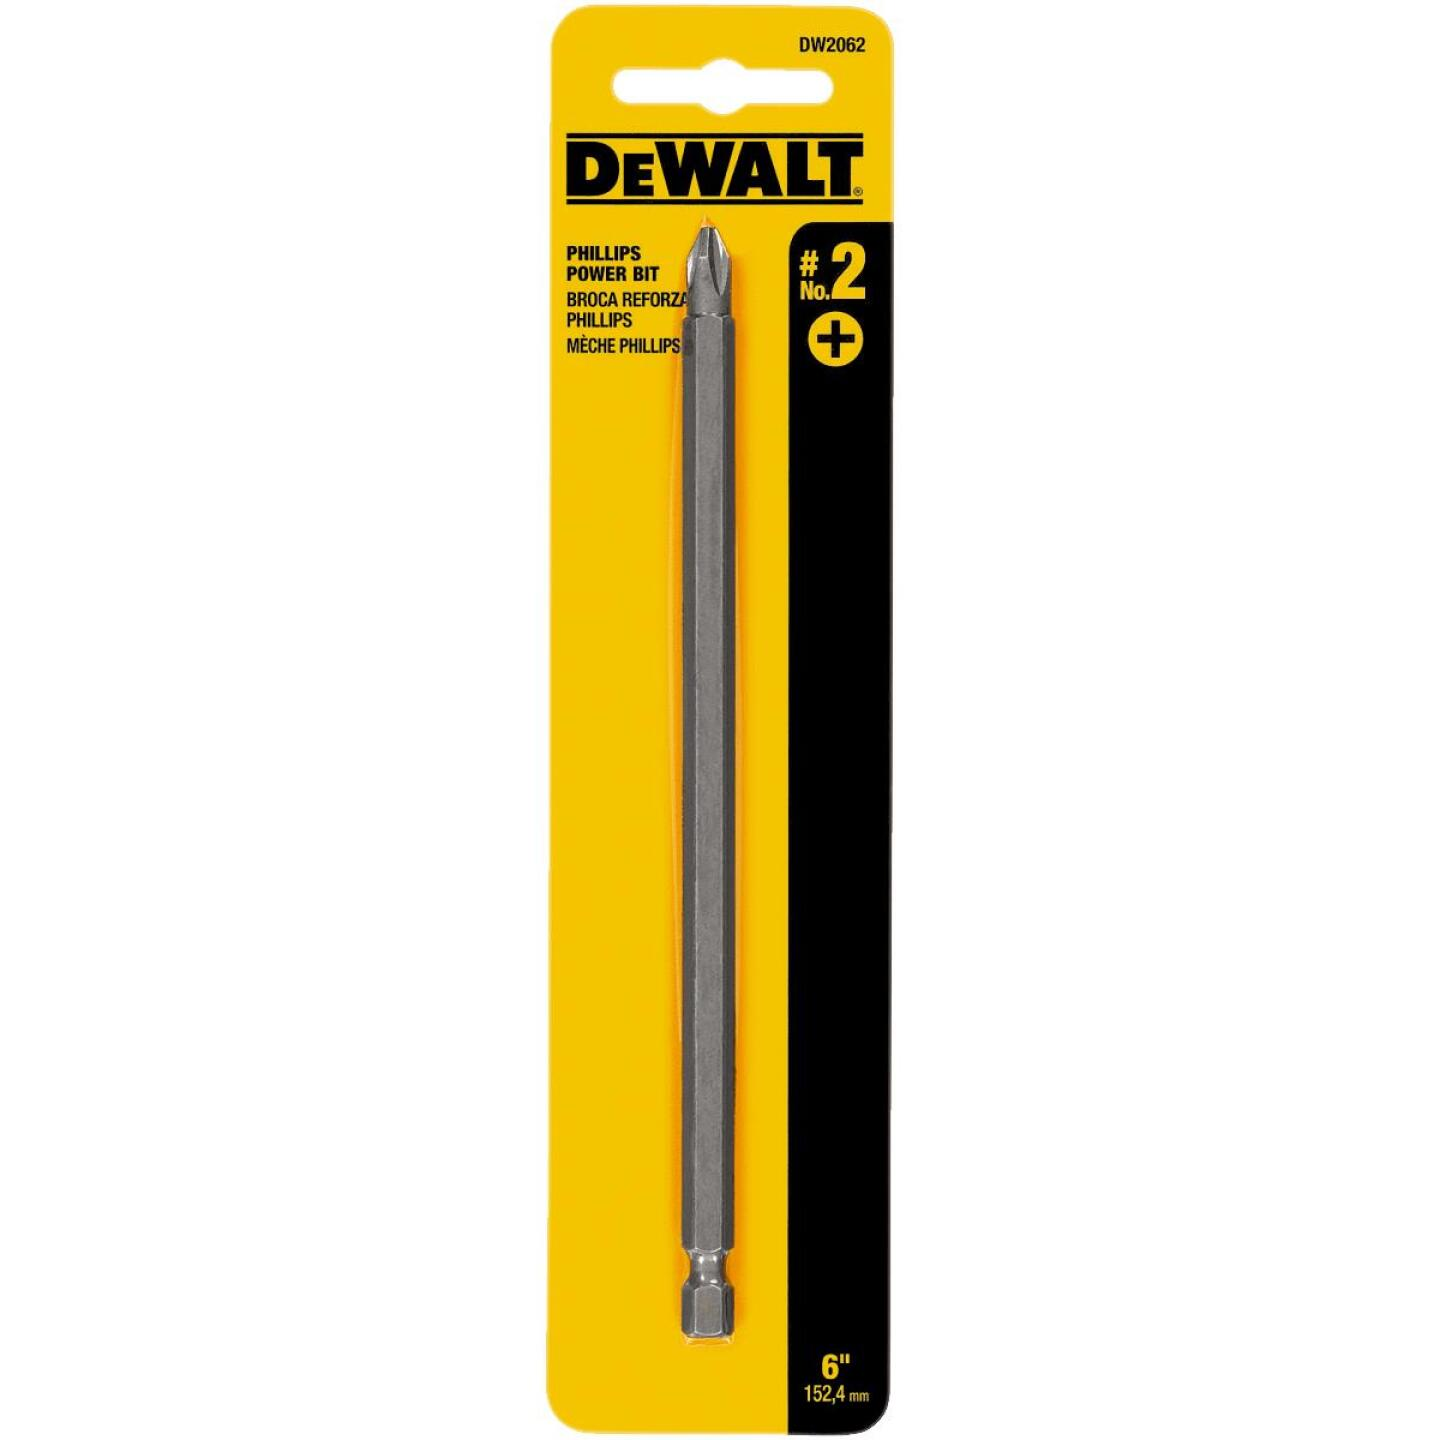 DeWalt Phillips #2 6 In. 1/4 In. Power Screwdriver Bit Image 1